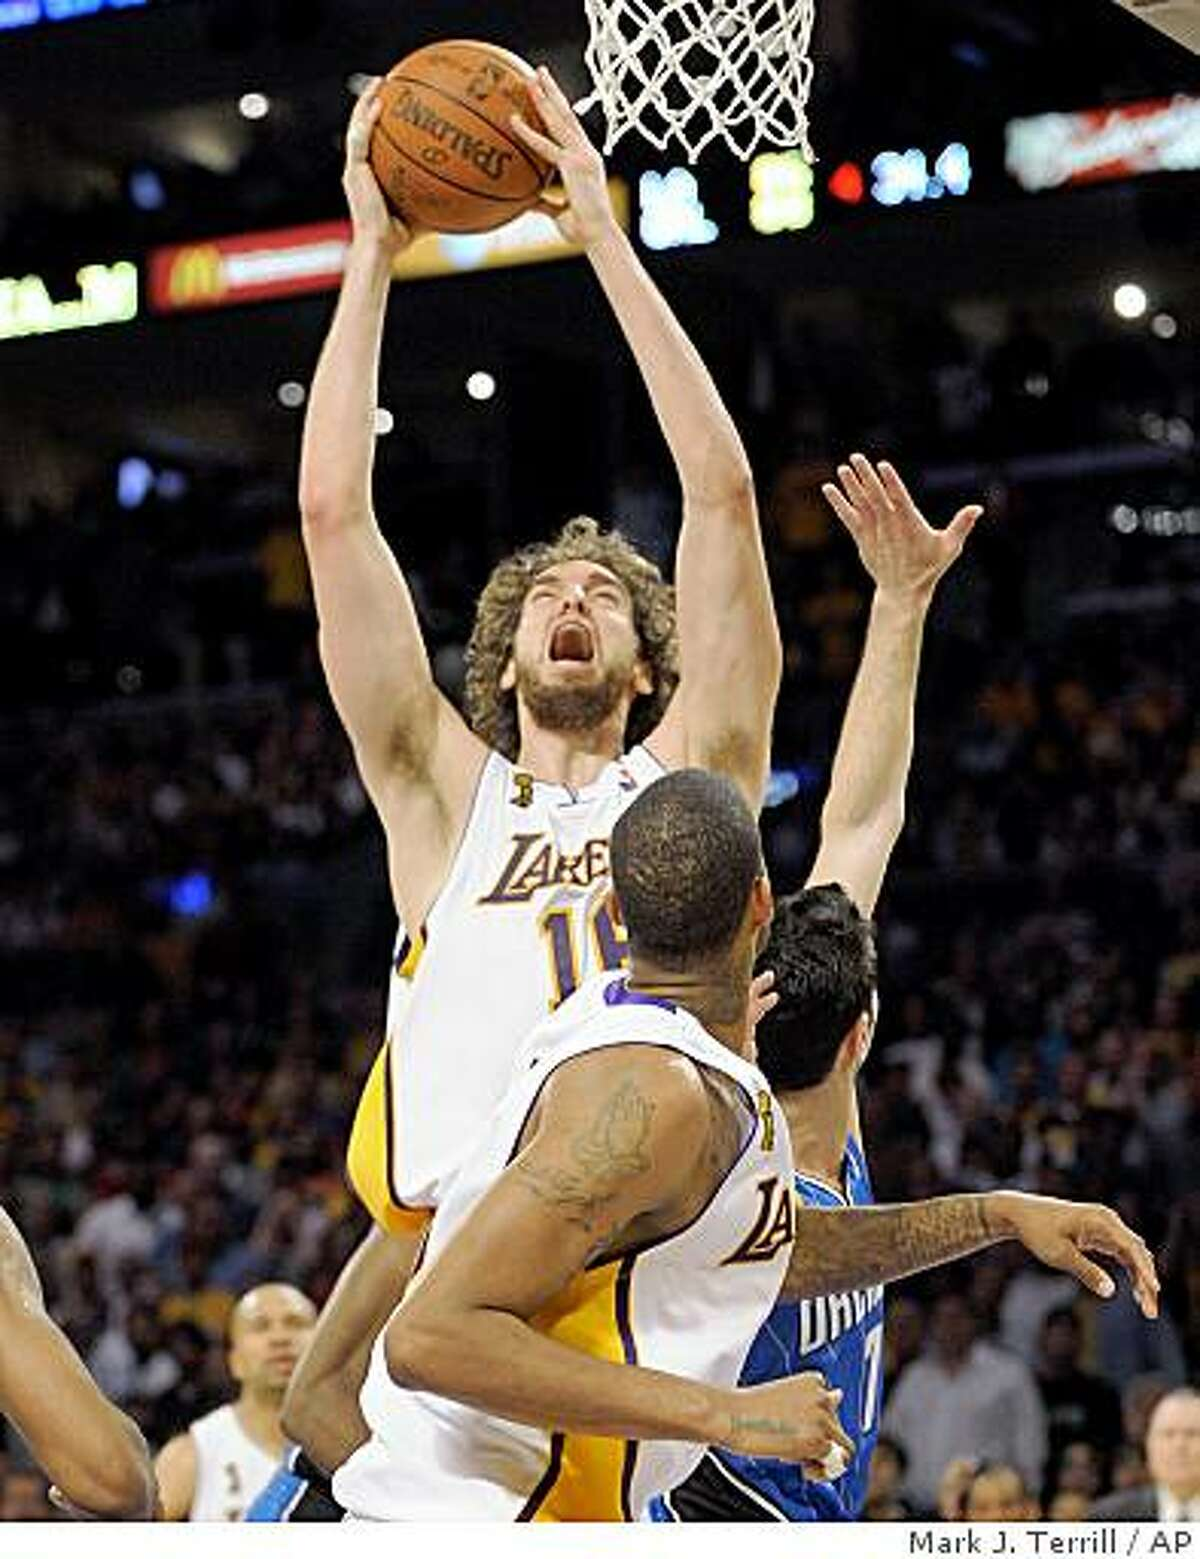 Los Angeles Lakers forward Pau Gasol (16) of Spain, puts up a key shot in the final seconds of the second half of Game 2 of the NBA basketball finals against the Orlando Magic Sunday, June 7, 2009, in Los Angeles. The Lakers went on to win 101-96 in overtime. (AP Photo/Mark J. Terrill)